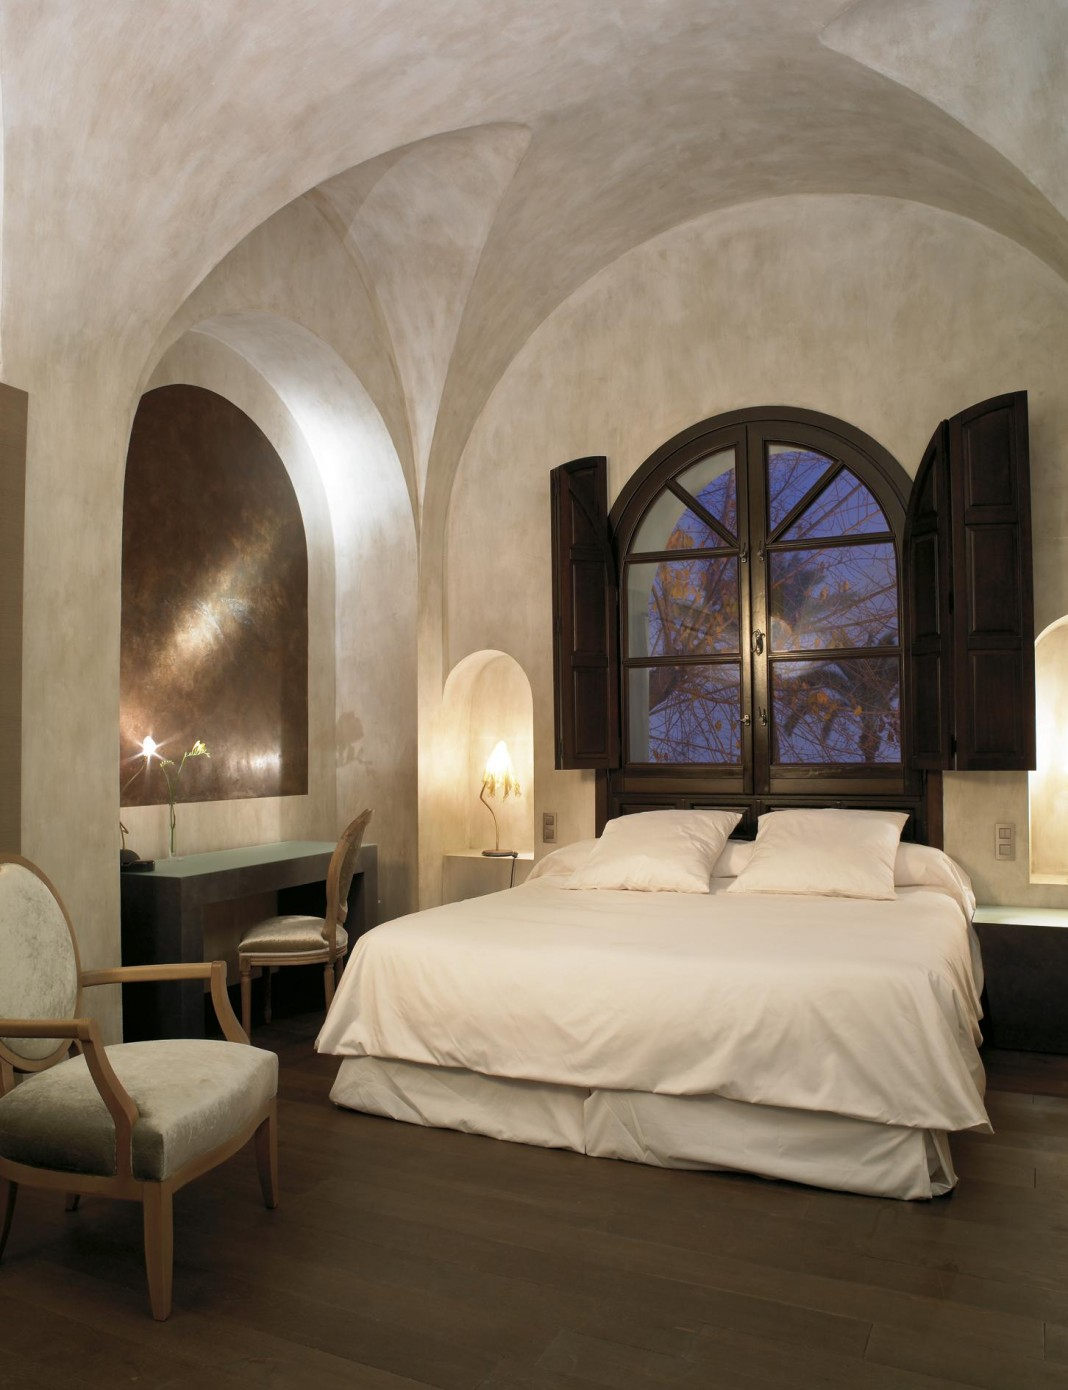 Hospes Palacio del Bailío, A Magical Hotel In The Heart Of The Ancient City of Cordoba